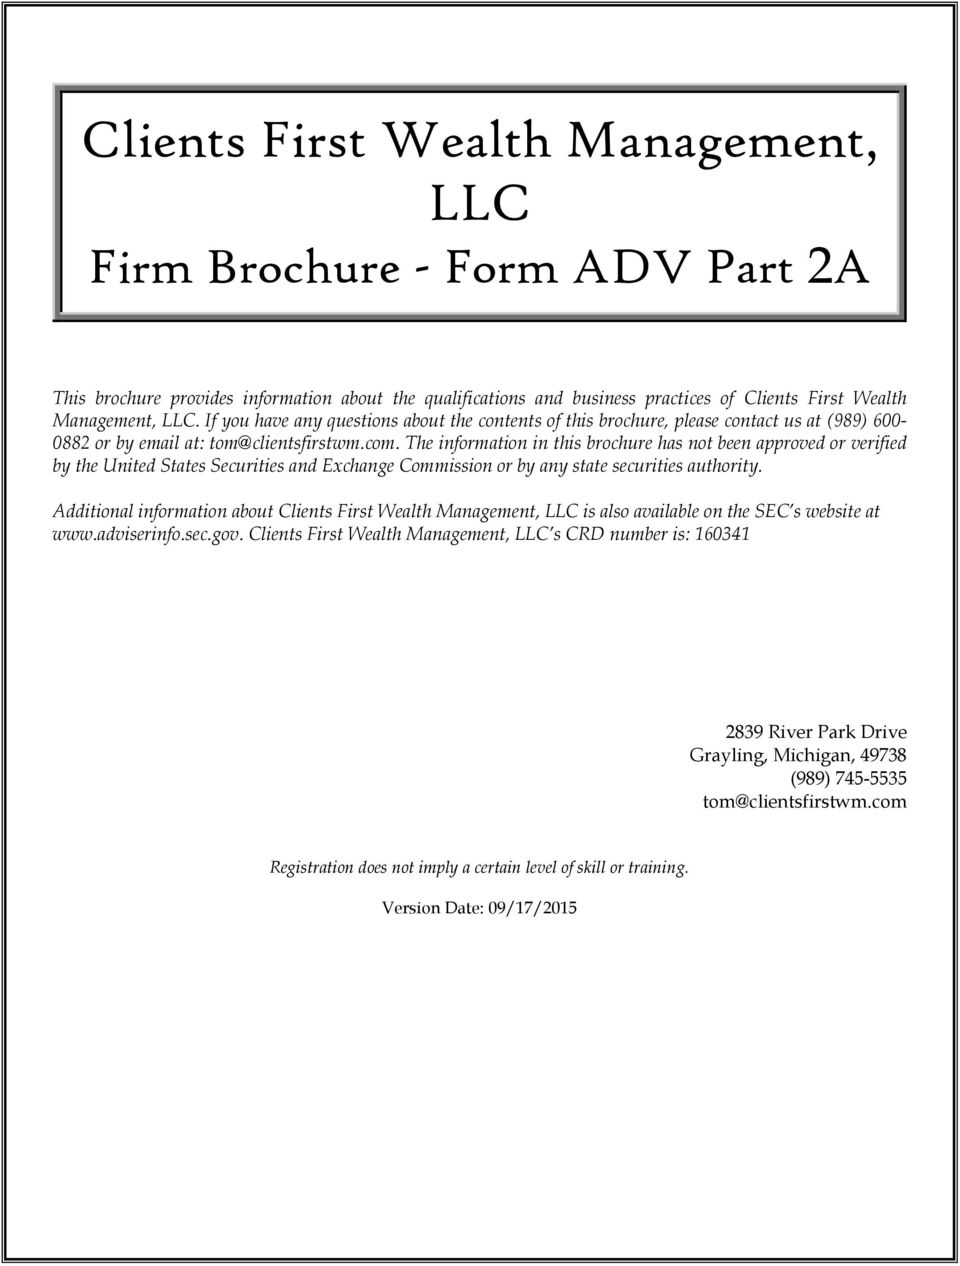 The information in this brochure has not been approved or verified by the United States Securities and Exchange Commission or by any state securities authority.